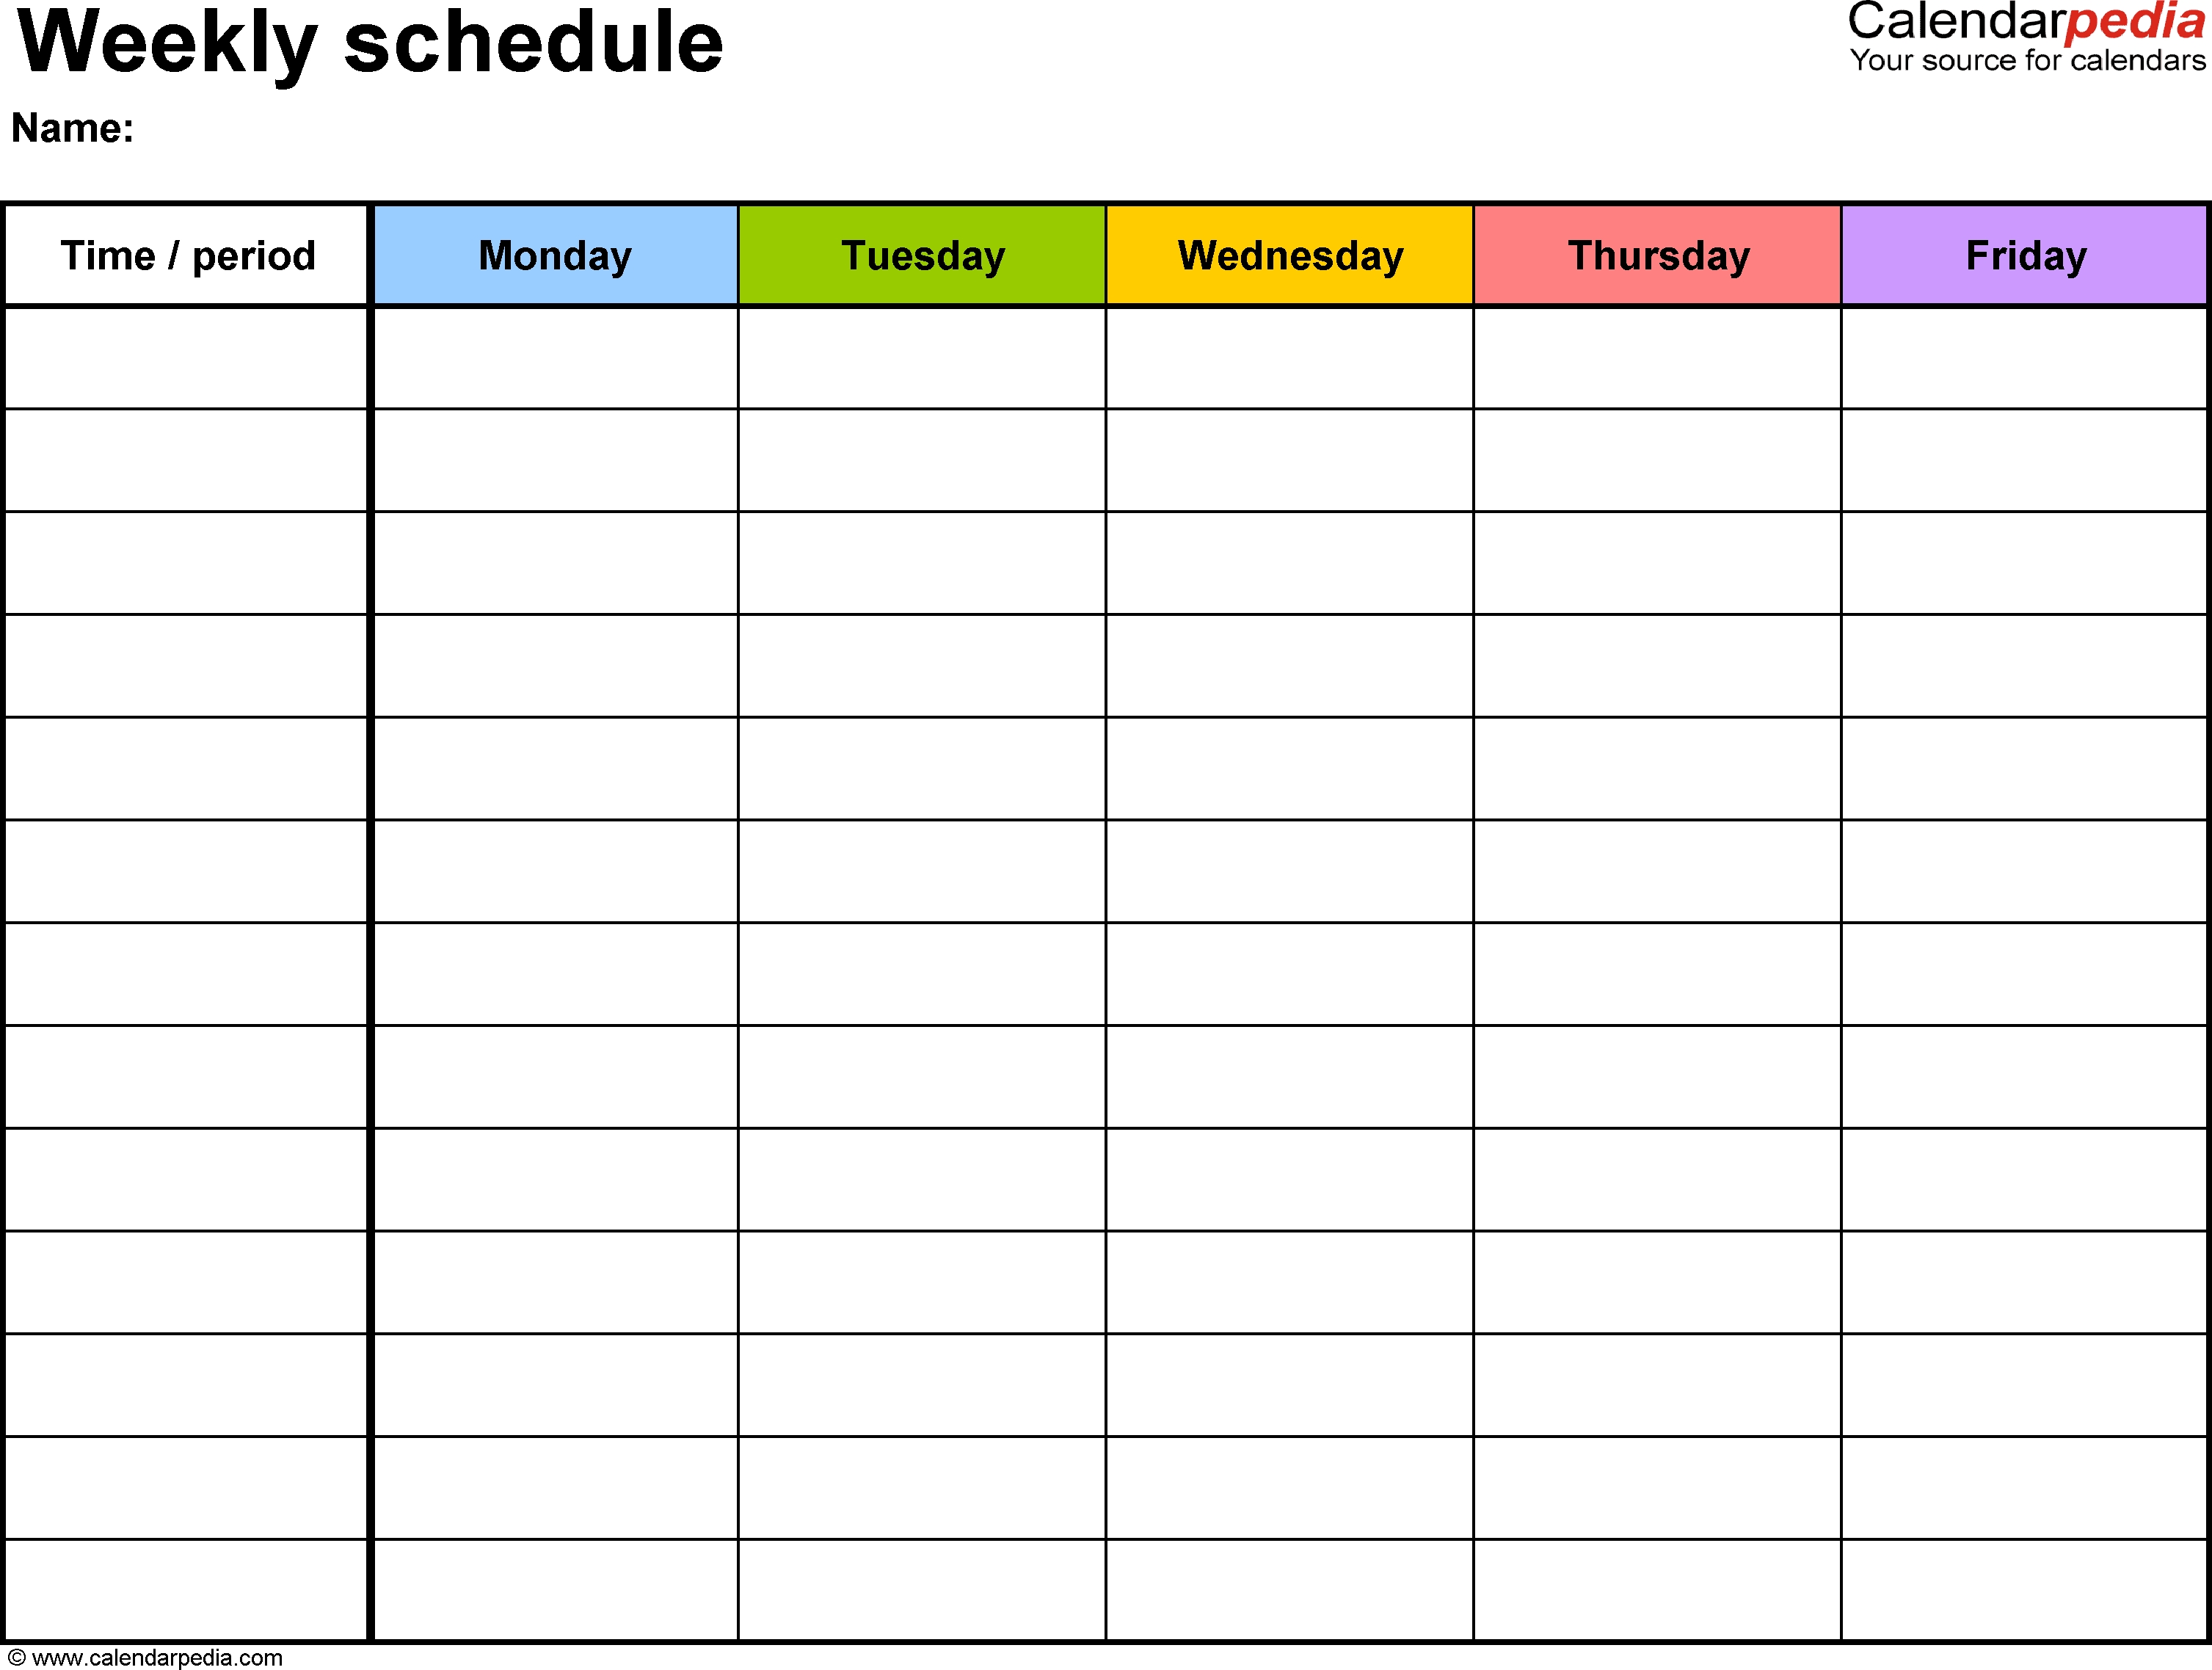 Free Weekly Schedule Templates For Word - 18 Templates  5 Day Week Calendar Template